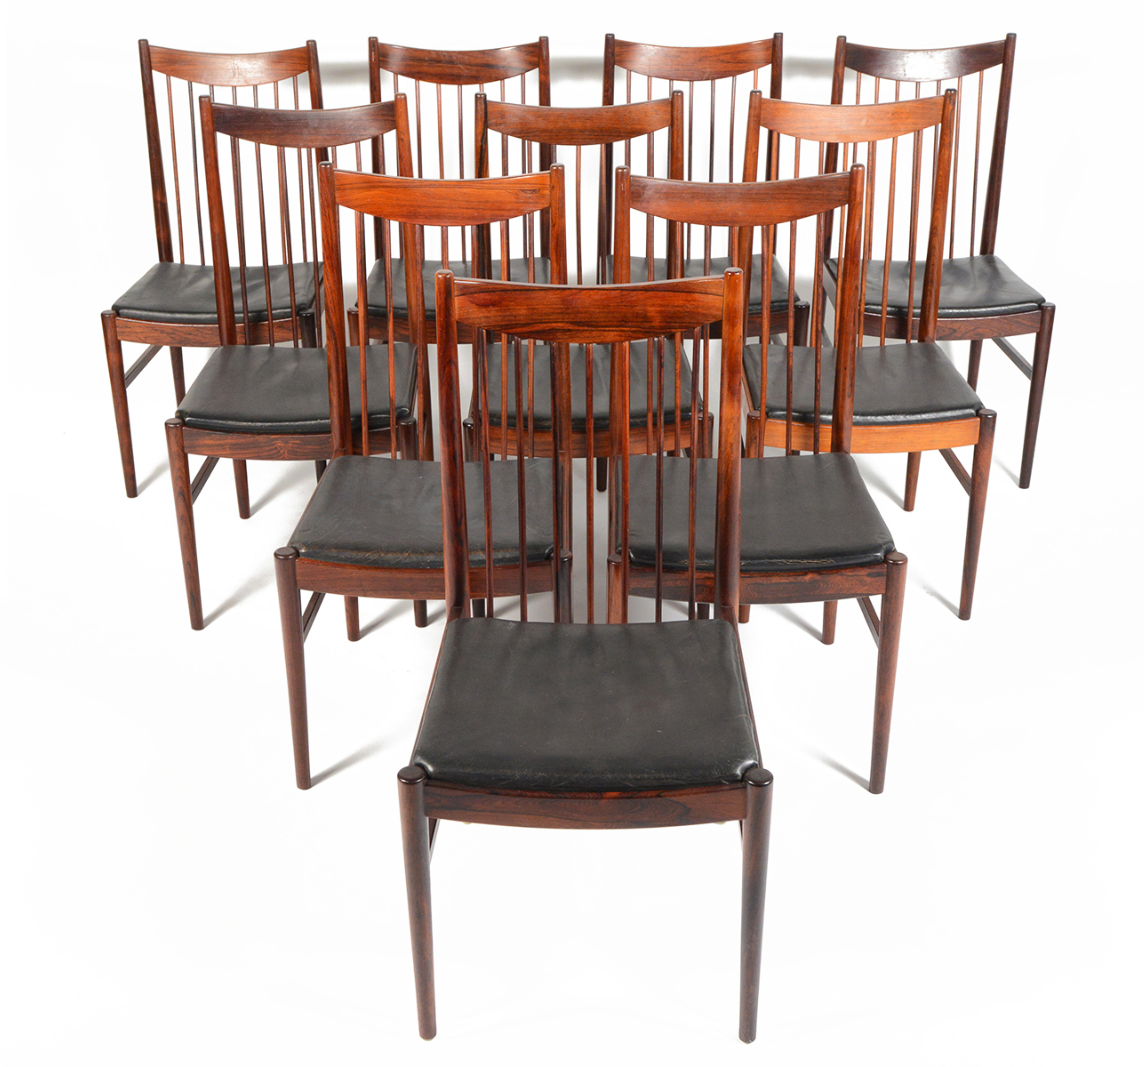 Details about 48 inch round formal duncan phyfe rosewood dining table - Arne Vodder Rosewood Dining Chairs Set Of 10 Chairish